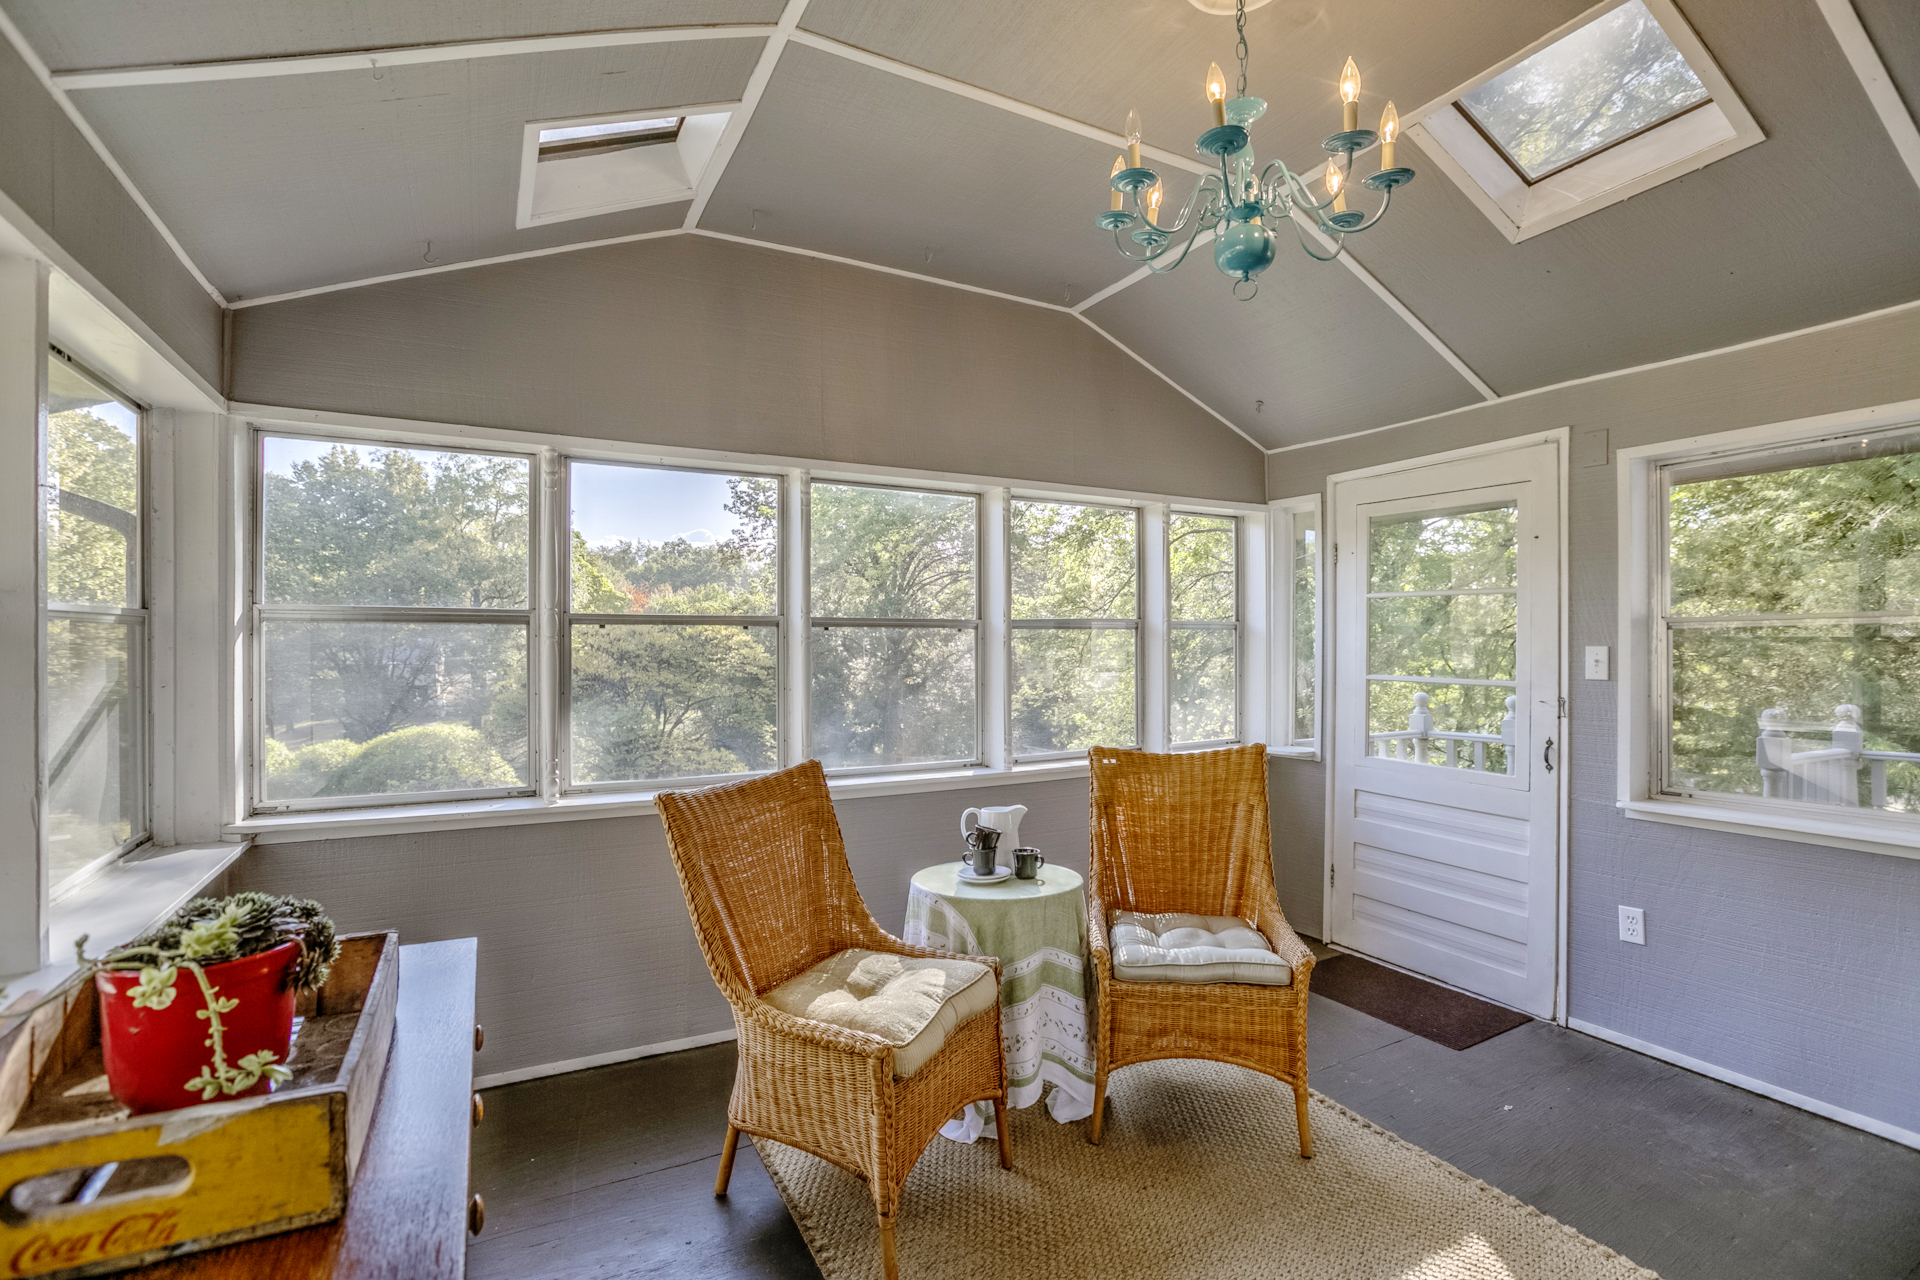 Tell a story with your staging. This sun room was set simply with two chairs and a table. The table had a coffee pot and cups.